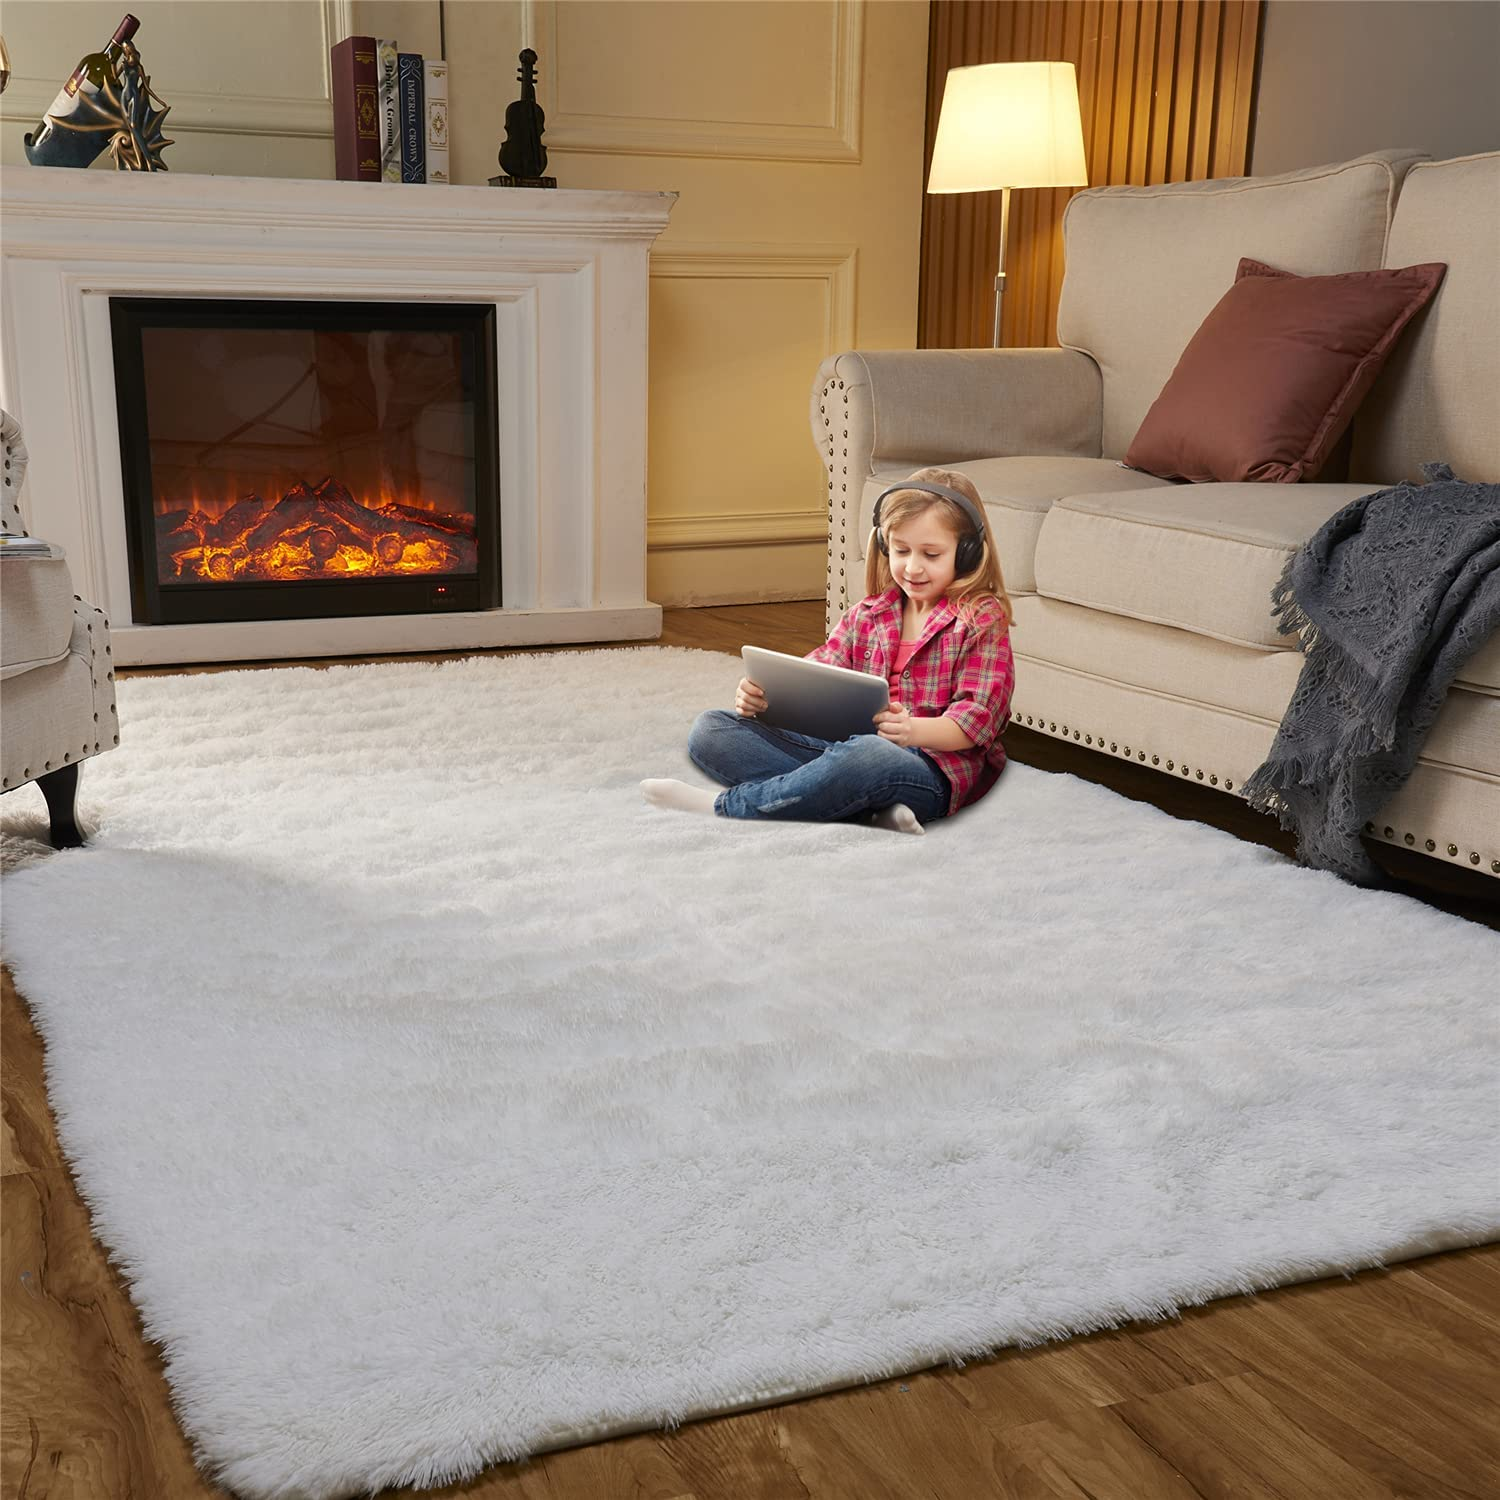 EasyJoy Ultra Soft Fluffy Area Rugs Bedroom free Room Living for Spring new work one after another Mod